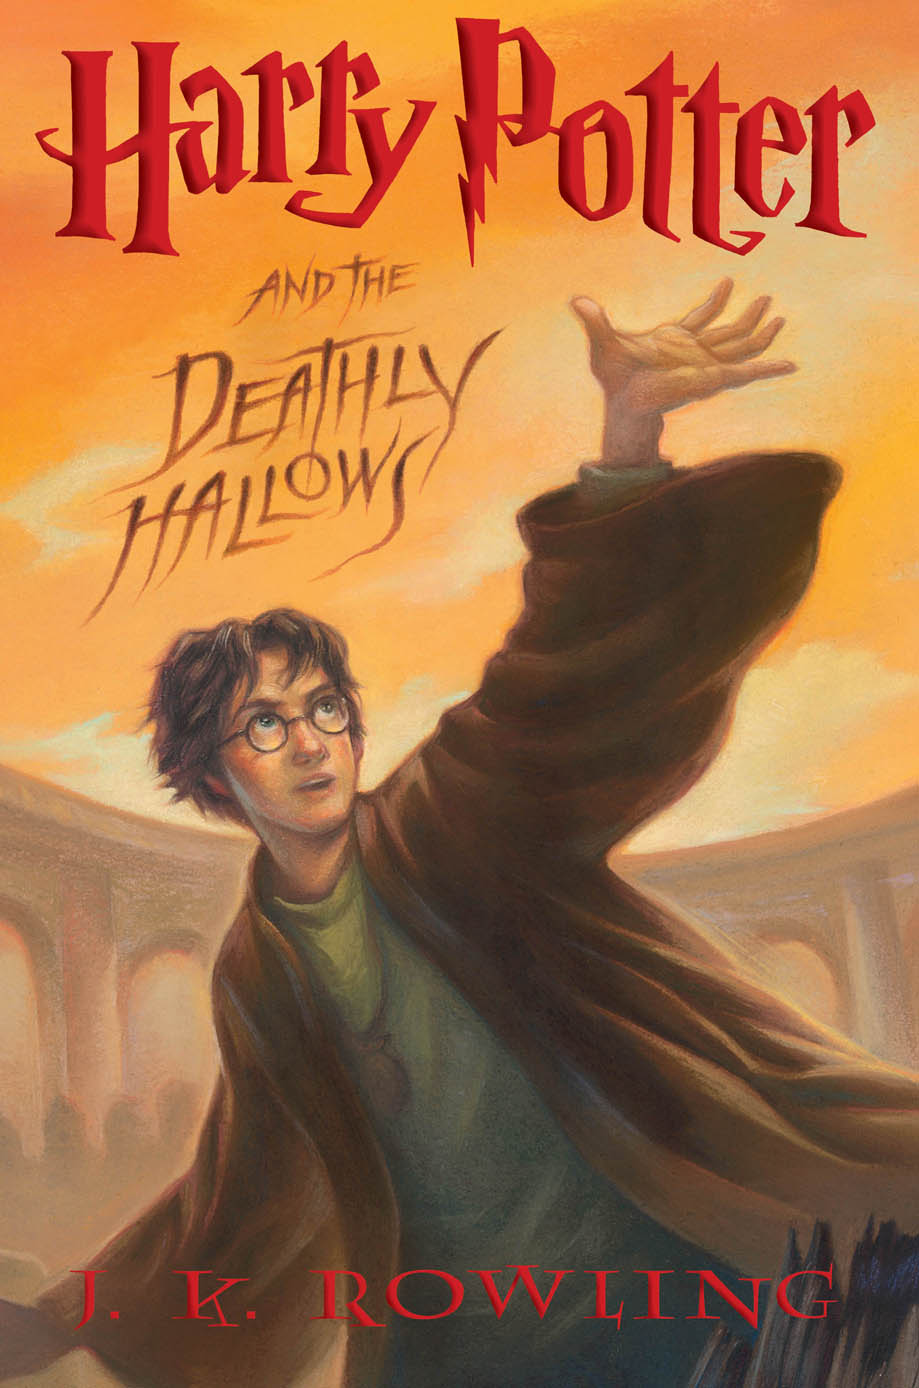 Image result for deathly hallows cover